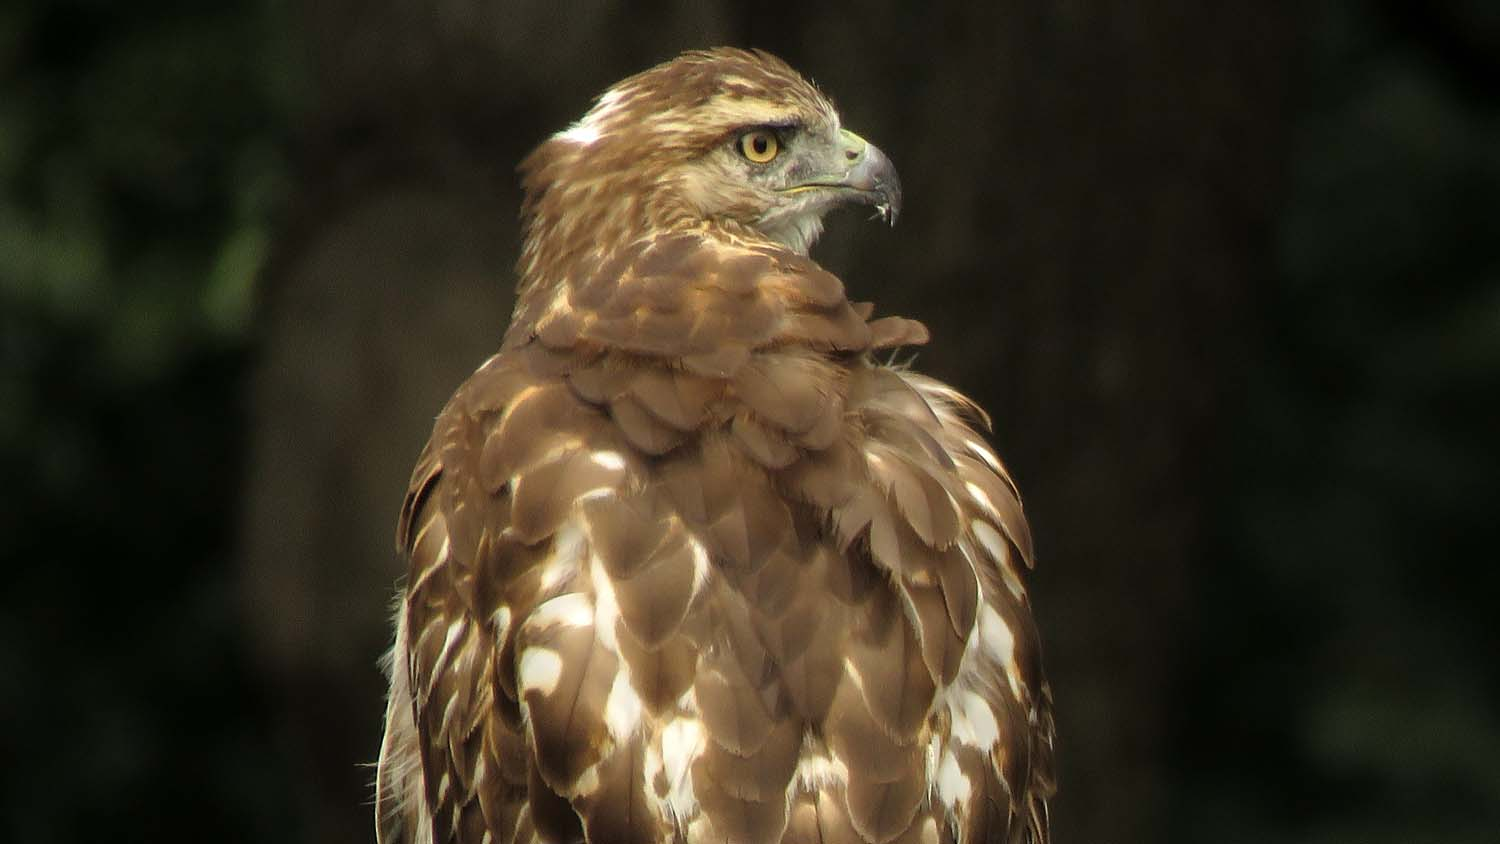 A first-year red-tailed hawk visits the playground at 100th Street in Central Park, September 22, 2018.